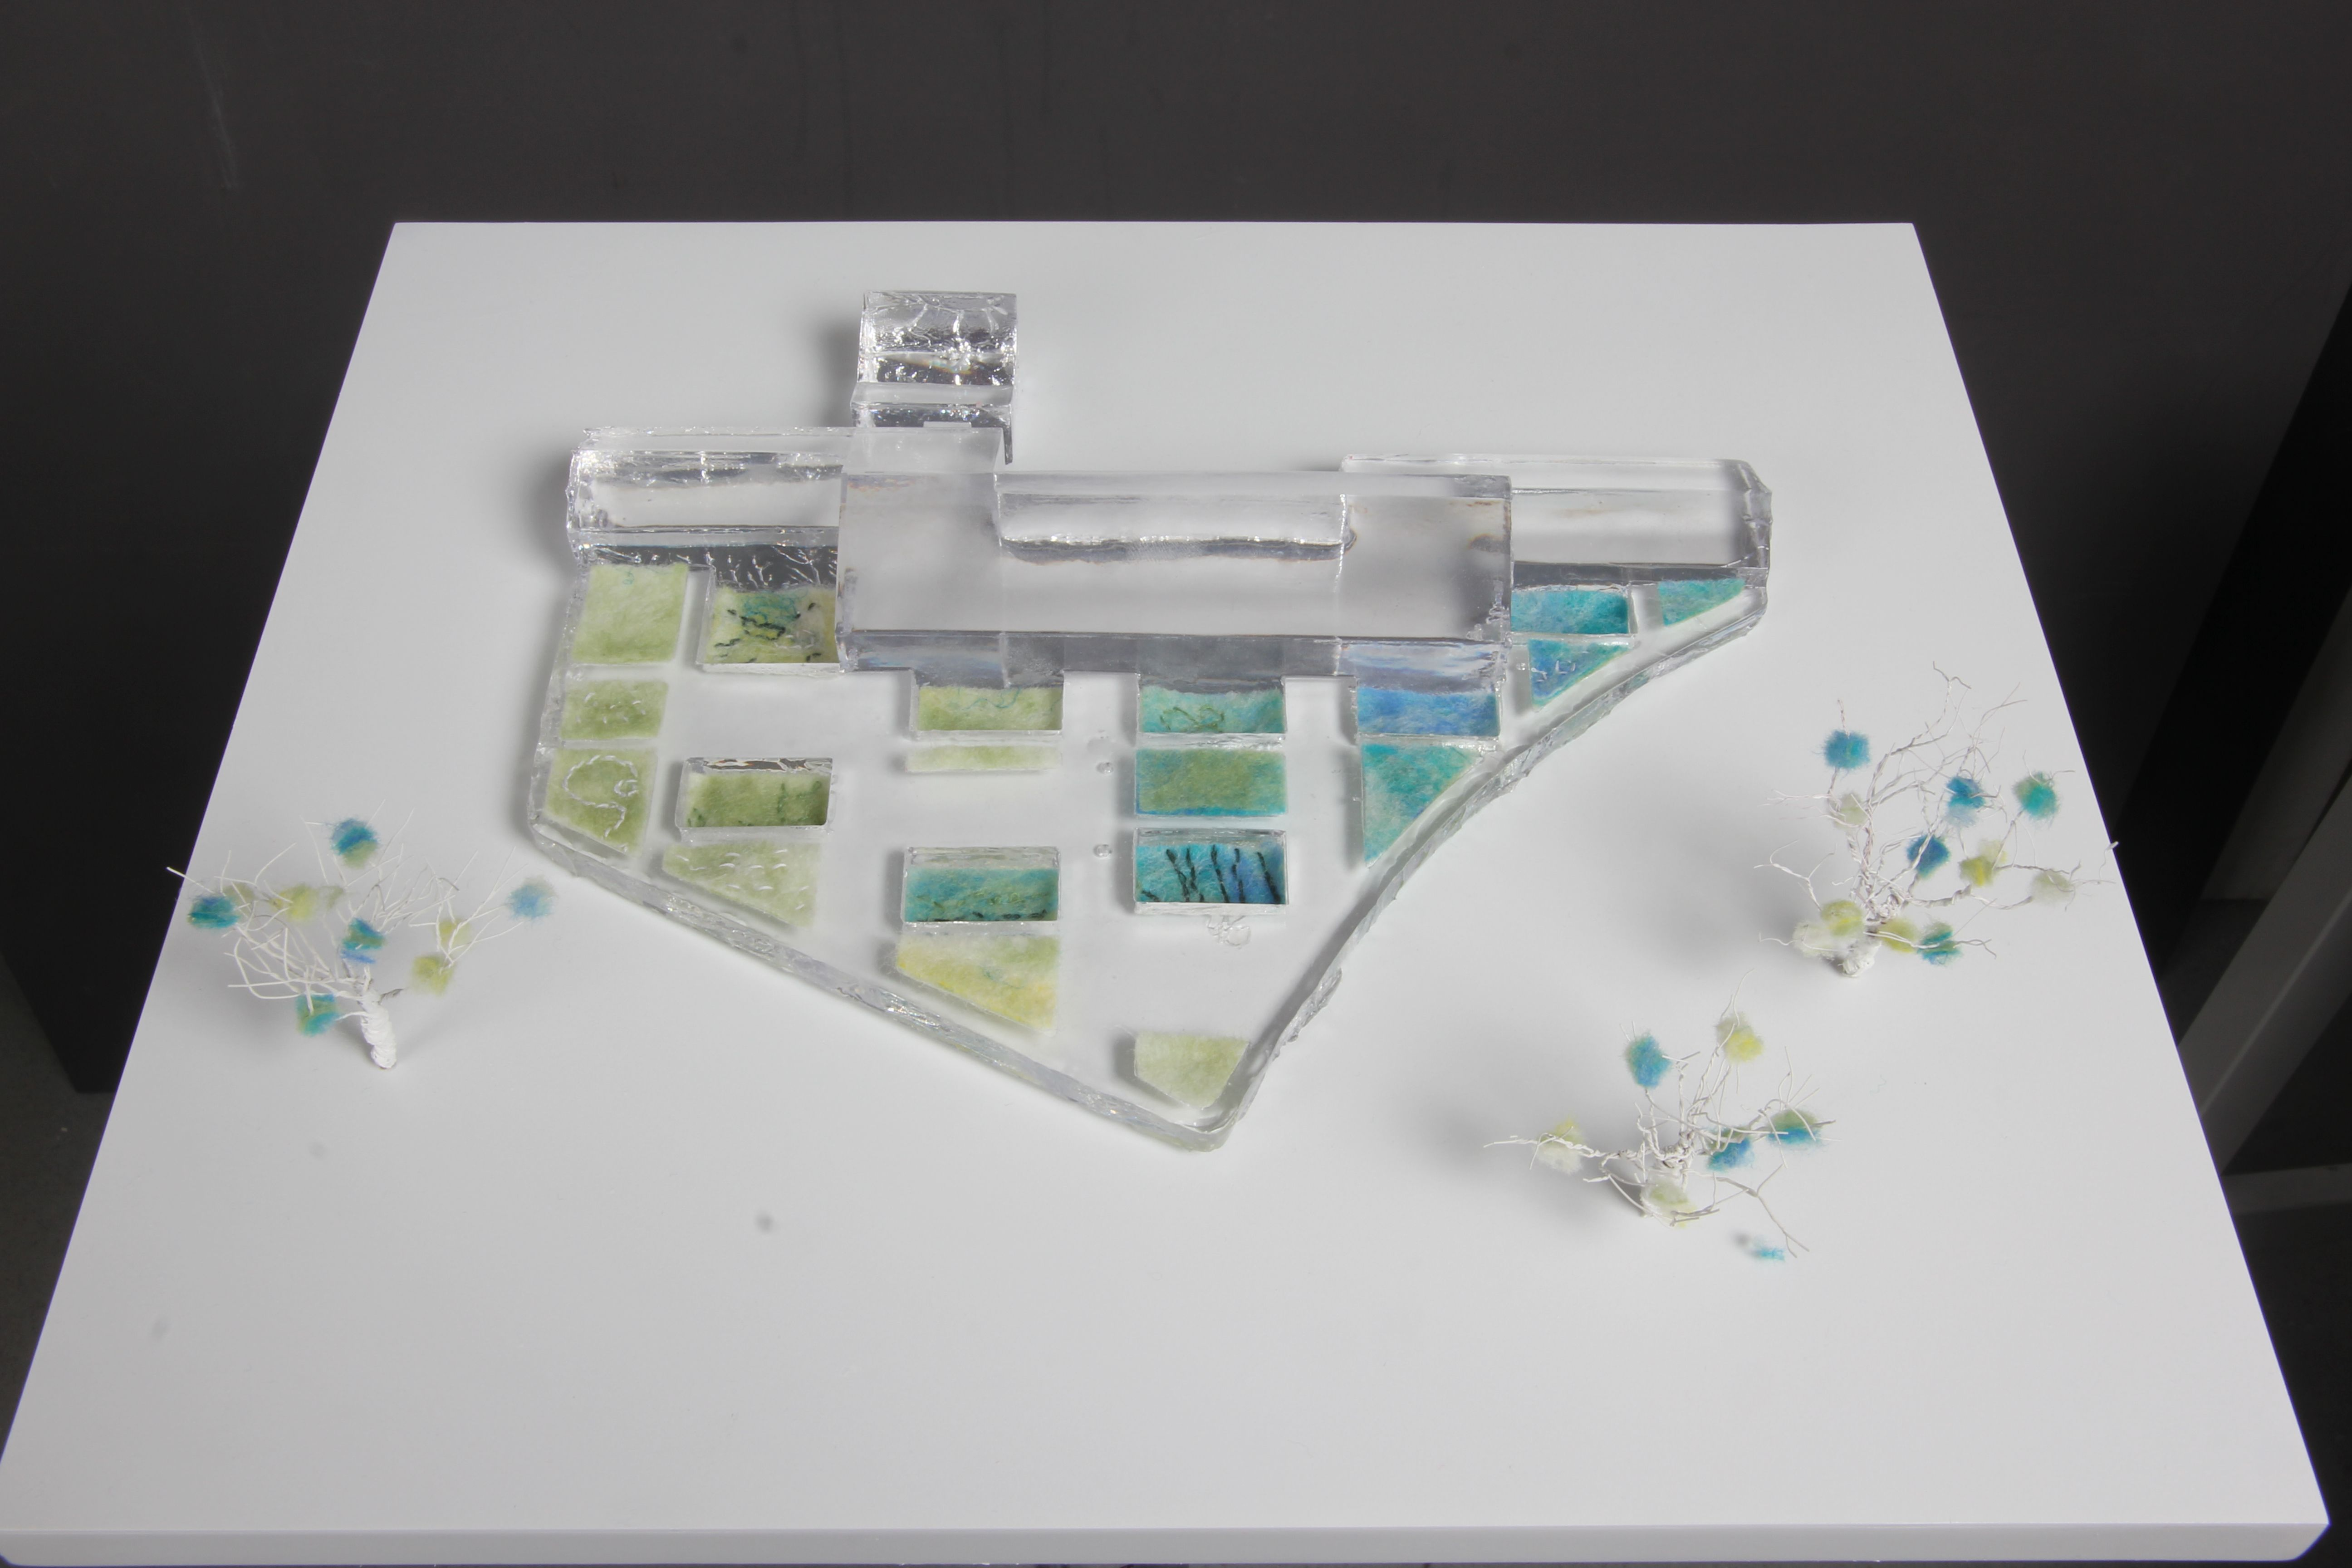 Final Piece - Clear resin building with handmade felt pieces to represent the plant life.